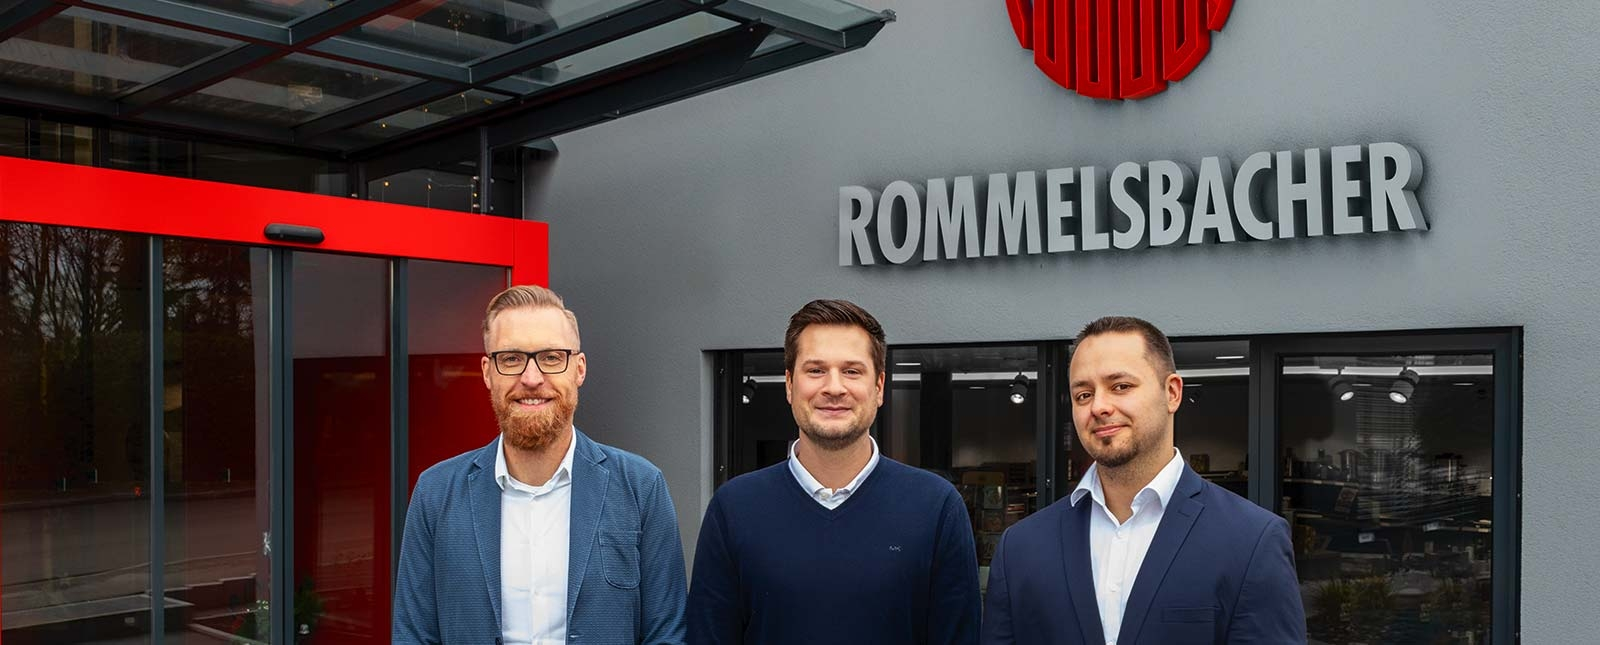 Rommelsbacher-OH-BB-SU-Header